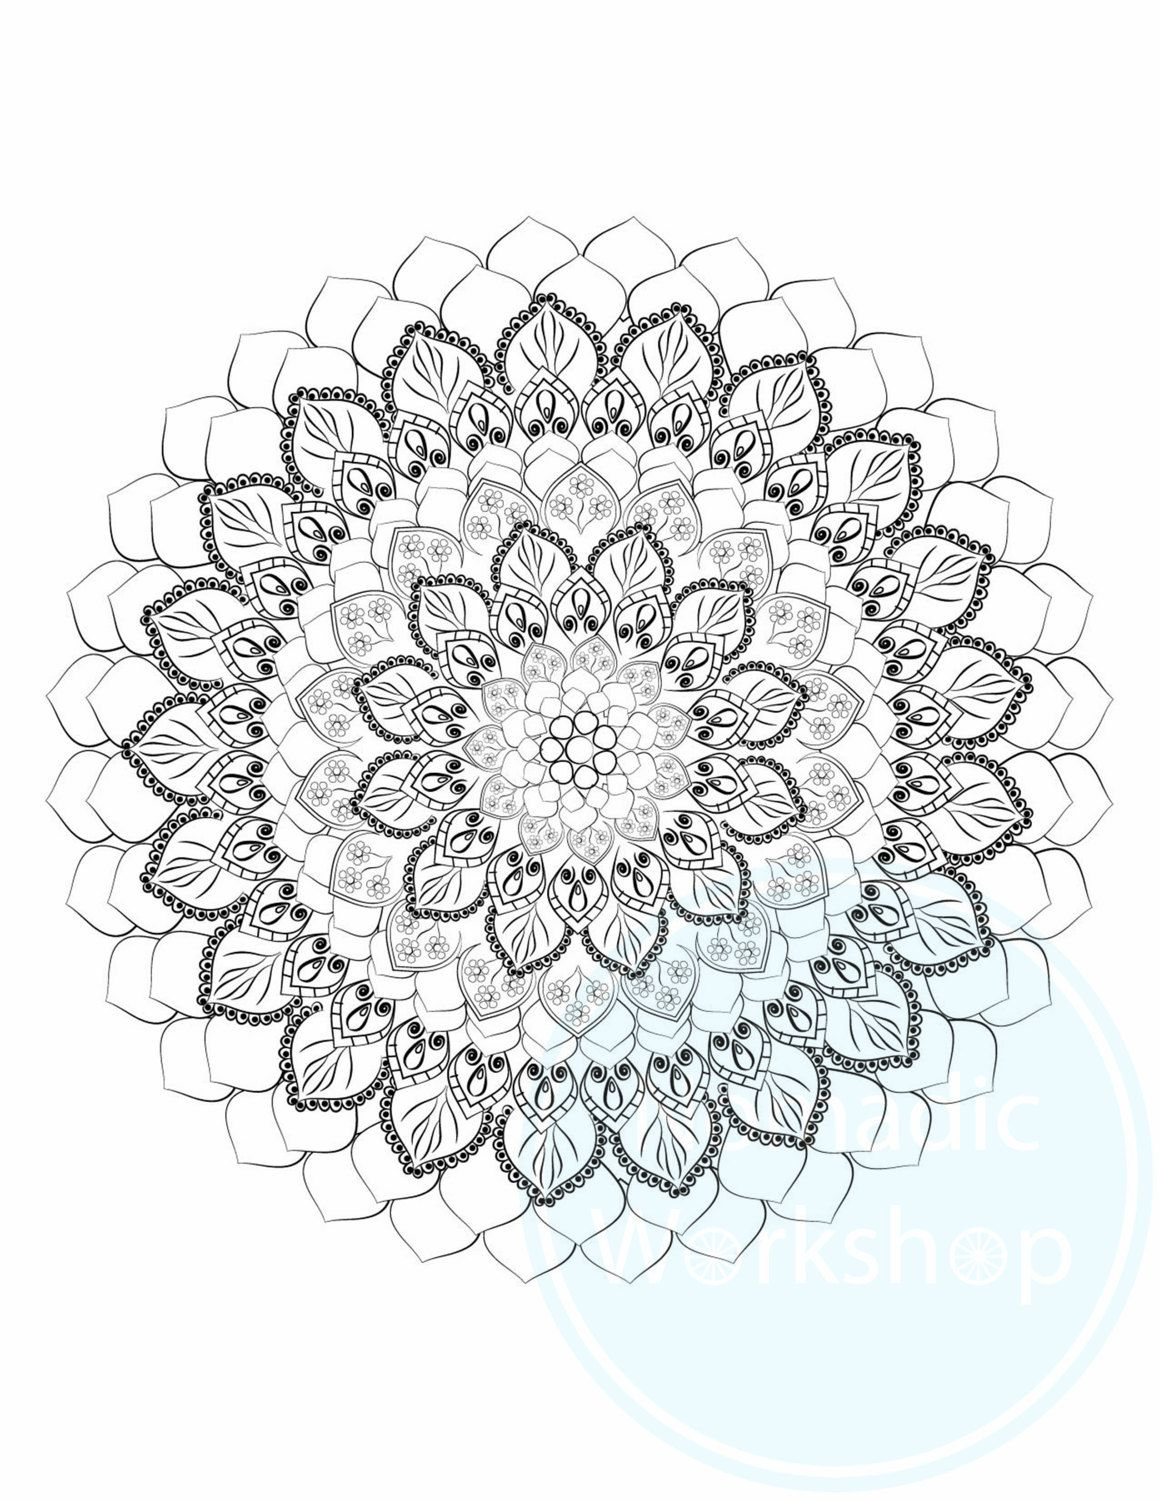 Mandala coloring pages printable for adults mandala coloring pages